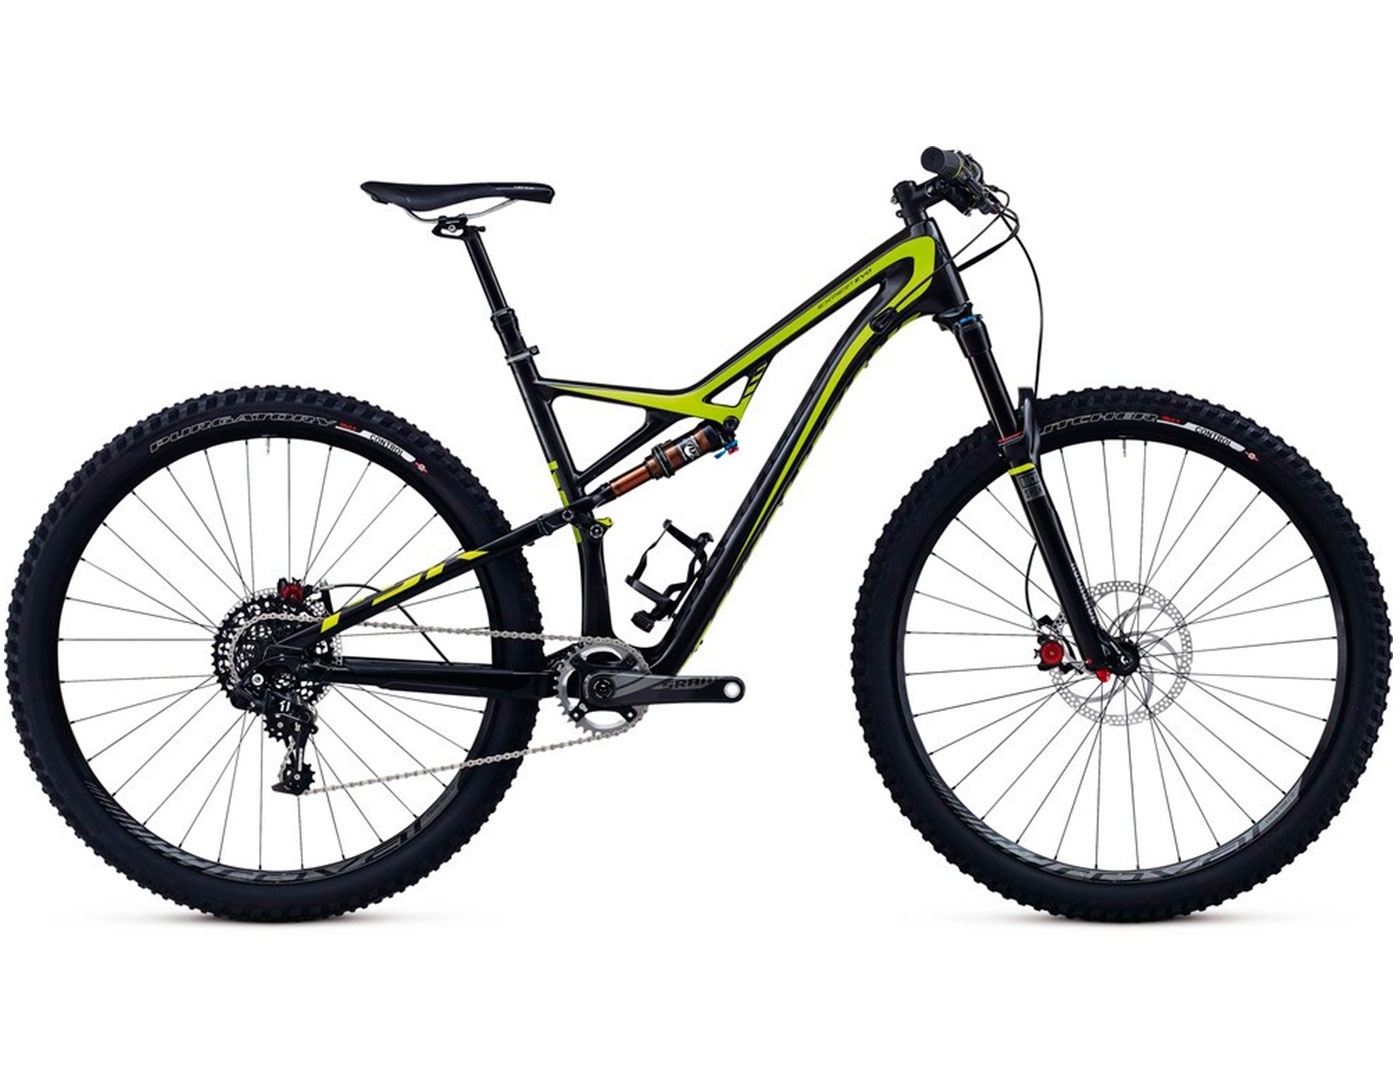 Велосипед Specialized Camber Fsr Expert Carbon Evo 29 (2014)